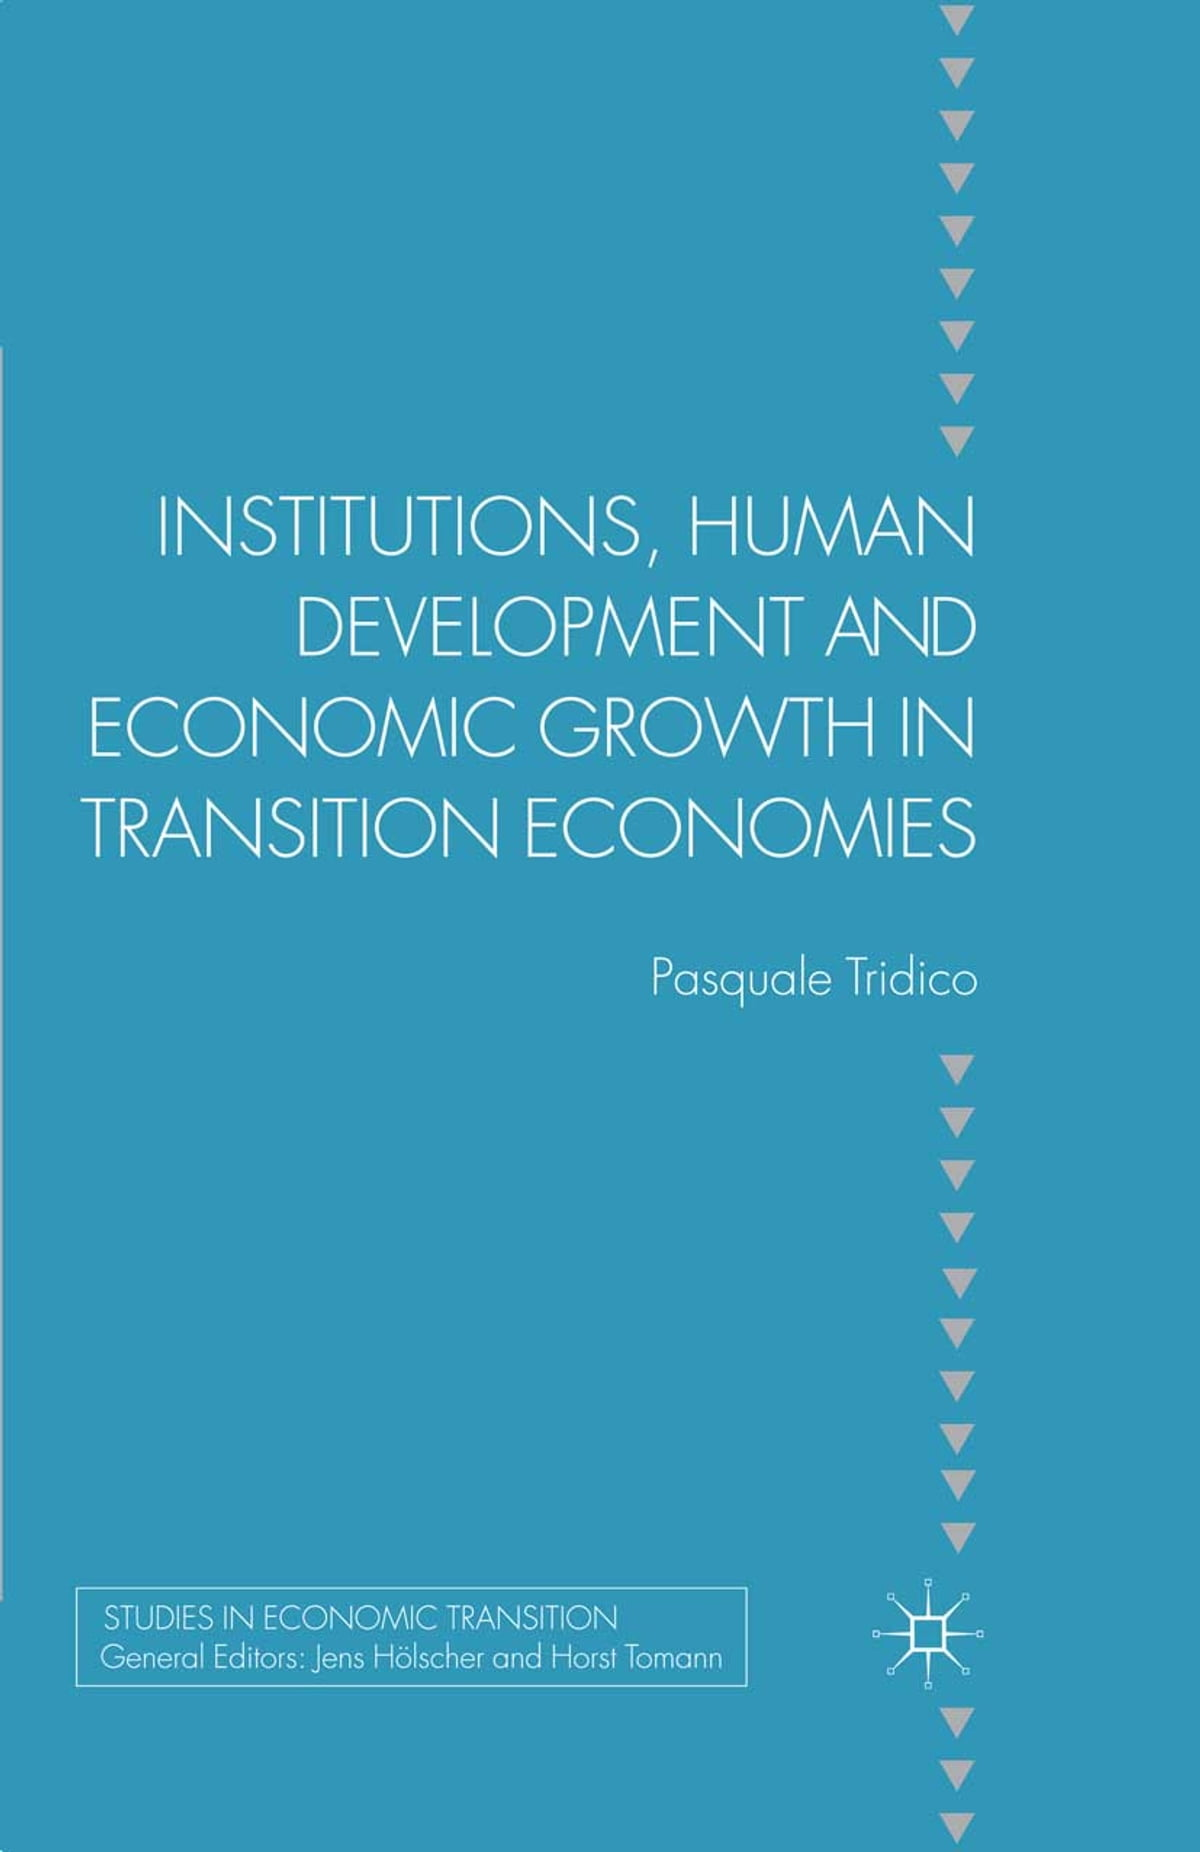 Institutions, Human Development and Economic Growth in